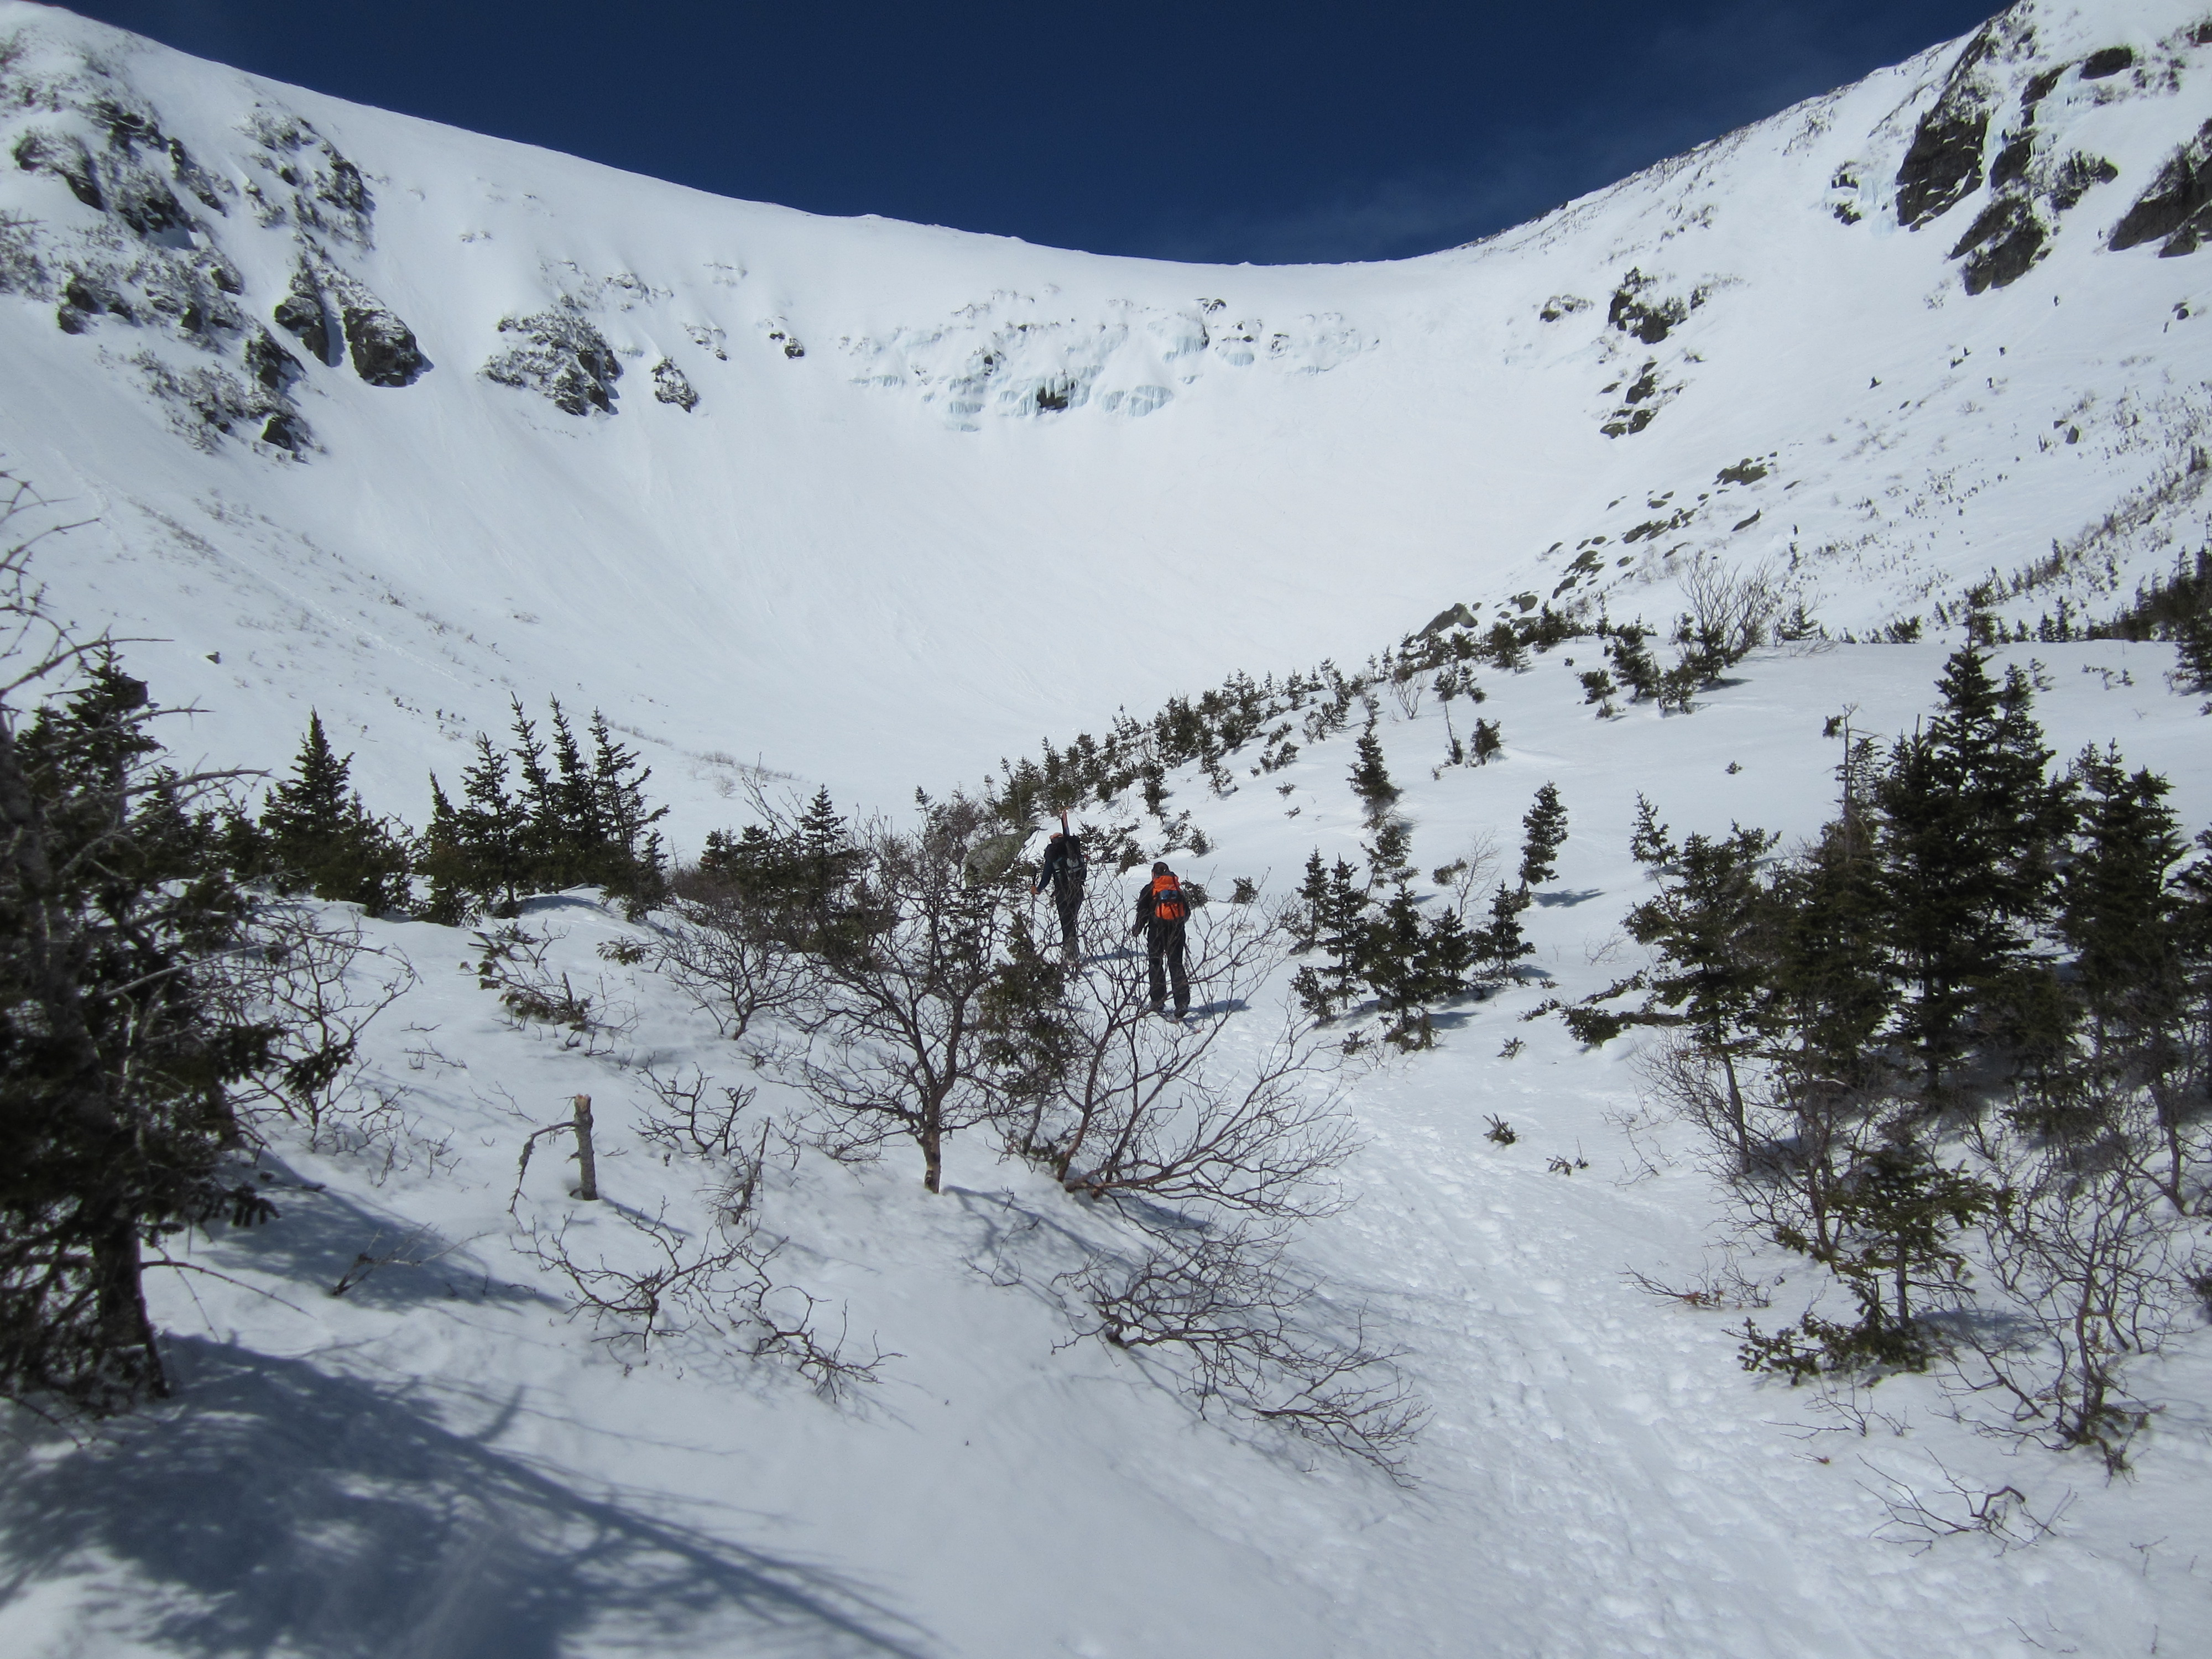 Tuckerman Ravine on April 11, 2014. The Lip is between the ice in the center and the rock band to its right. New England Ski Museum photo.